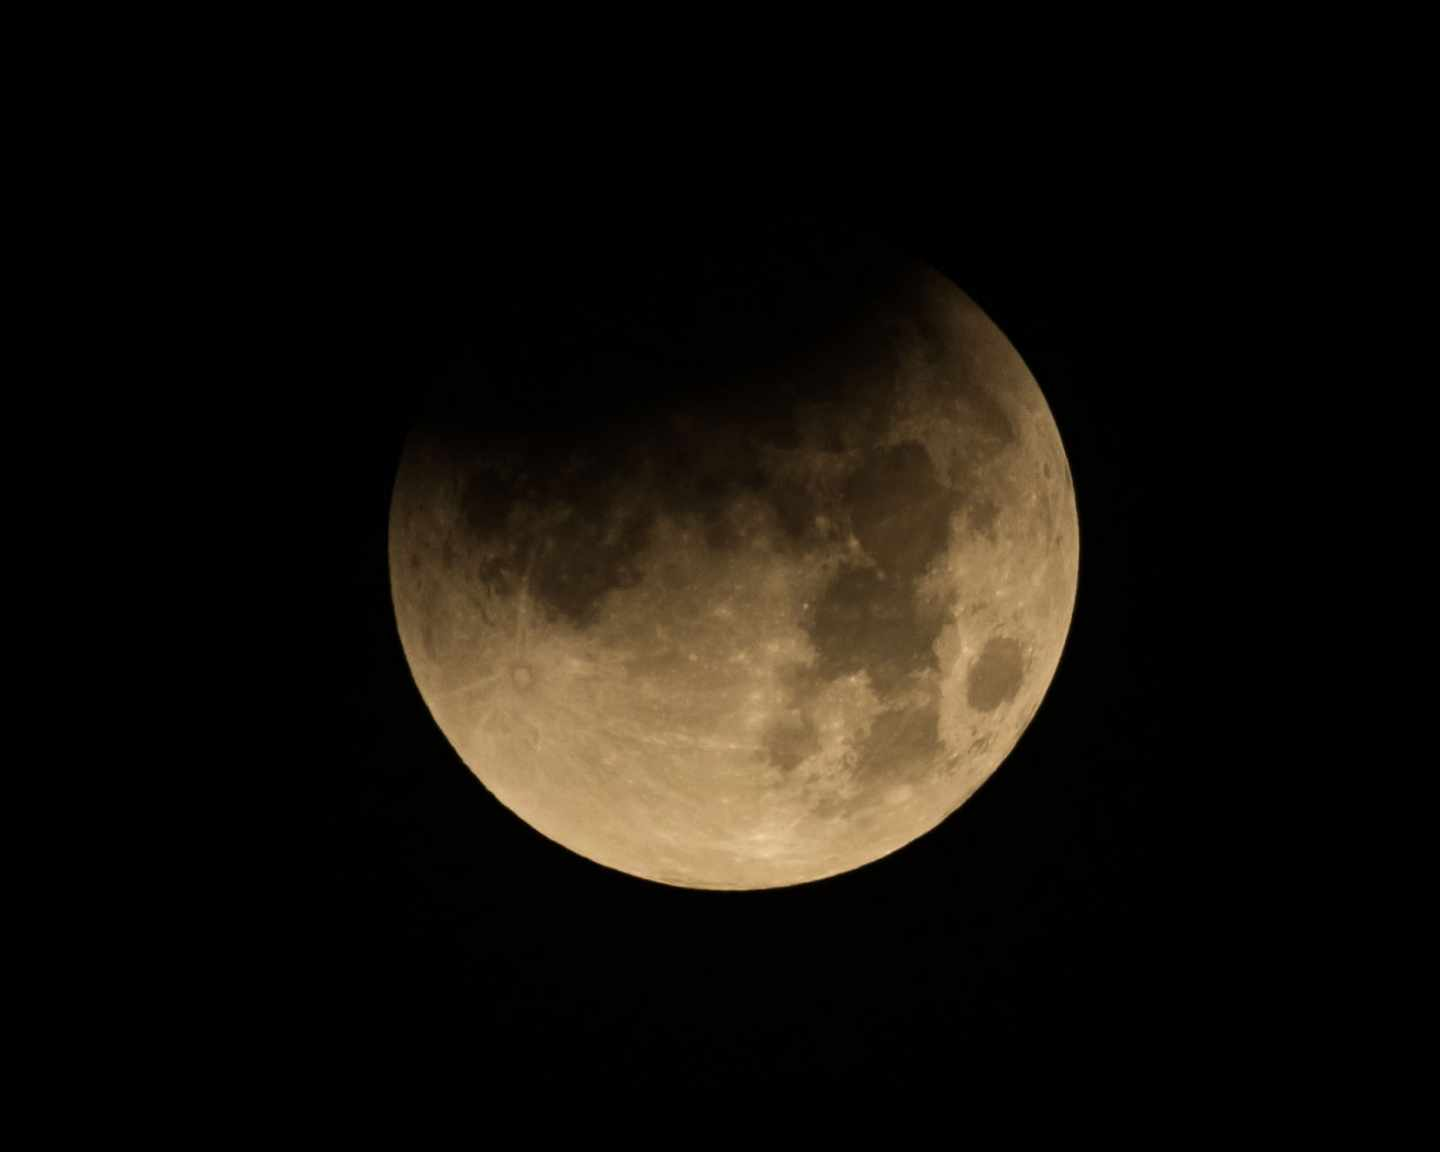 Eclipse lunar en enero de 2018 fotografiado en el Johnson Space Center de Houston | NASA/Robert Markowitz